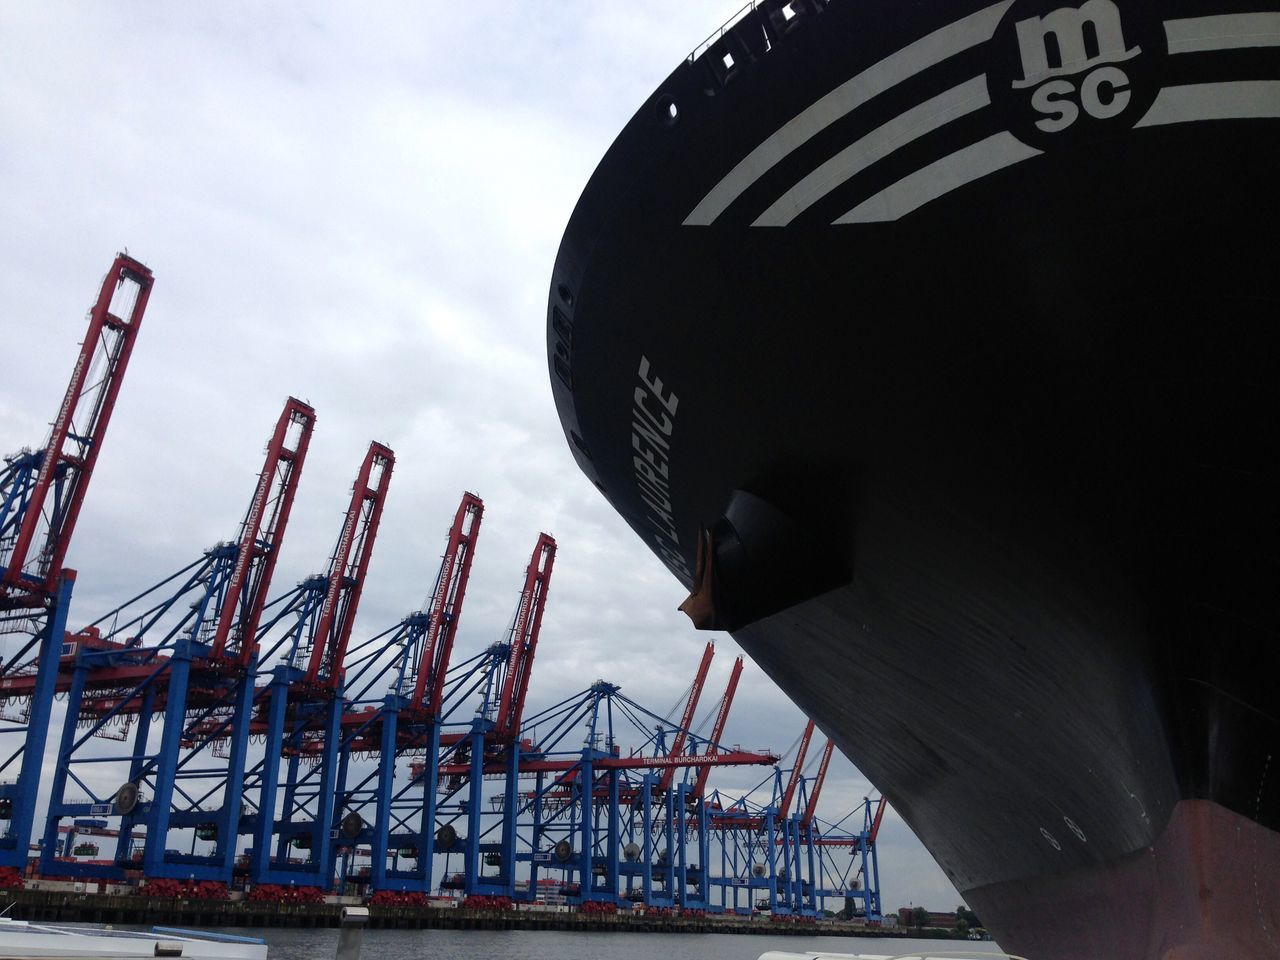 Sky Low Angle View Outdoors Text Day Ship Logistics Hamburg Harbour Harbor Freight Transportation Shipping  Architecture No People